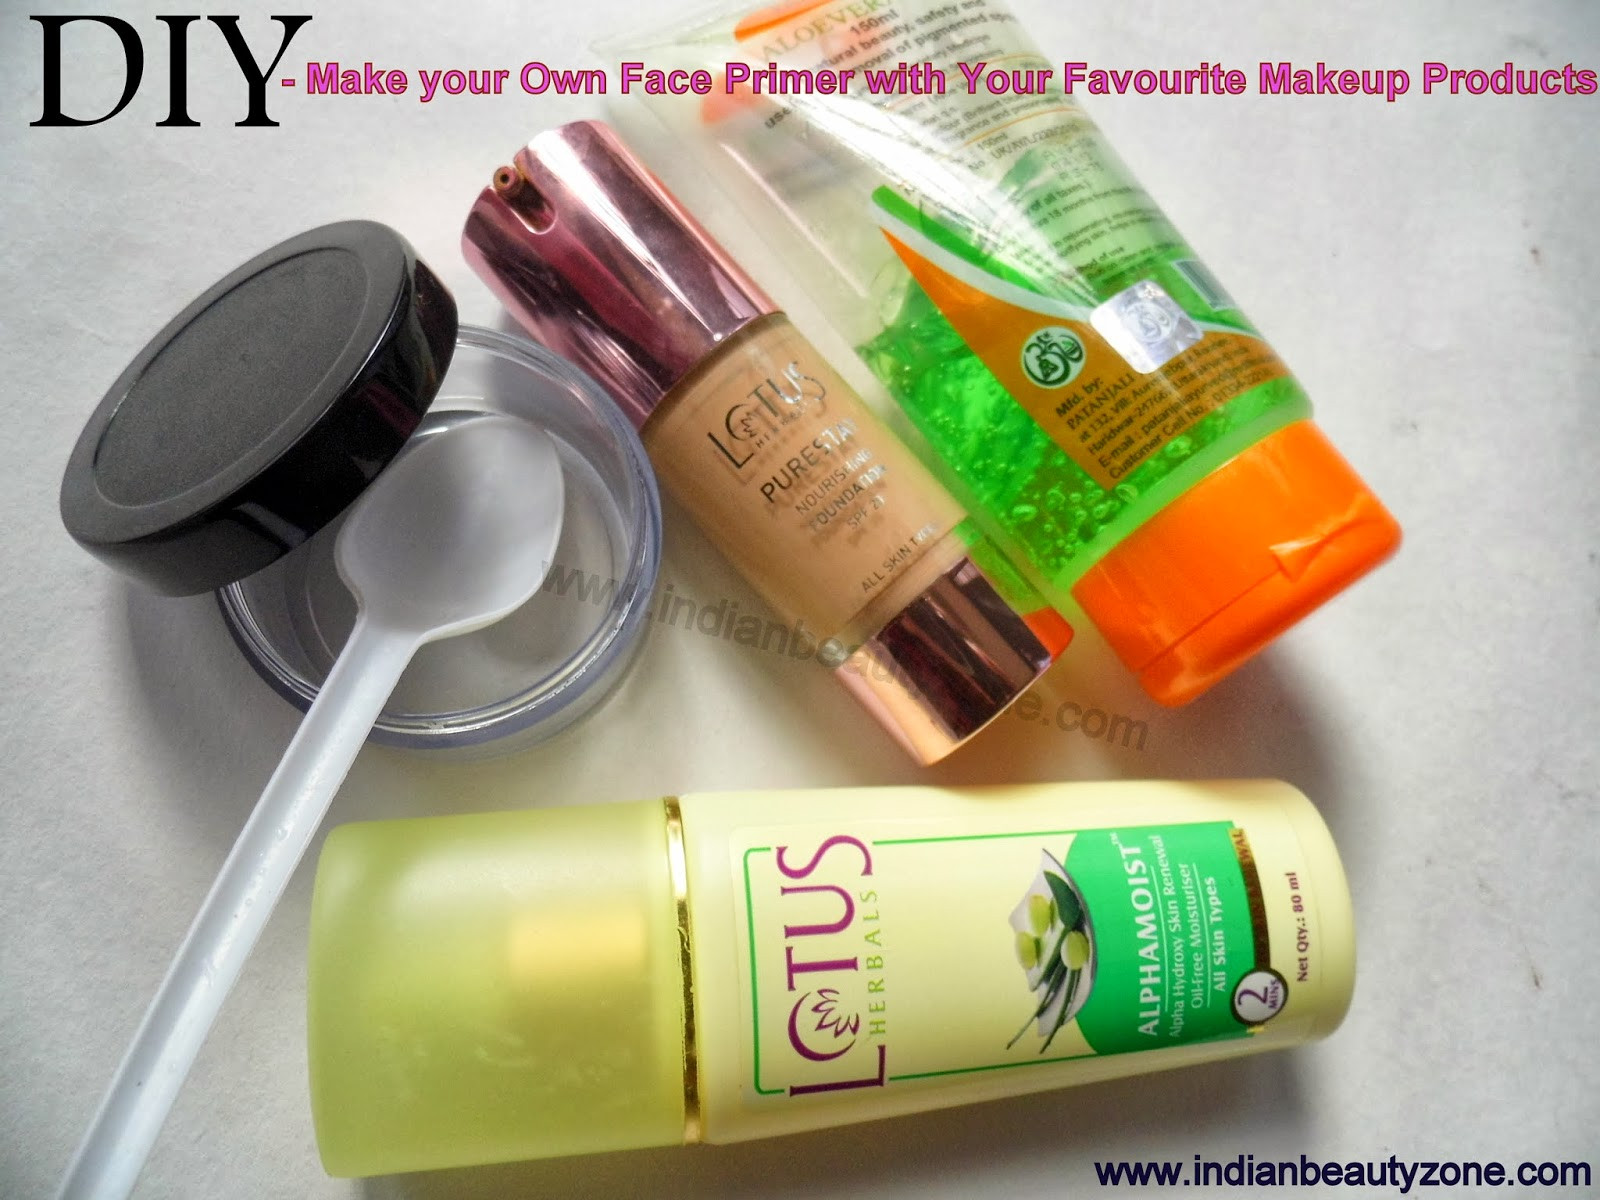 Best ideas about DIY Face Primer . Save or Pin Indian Beauty Zone DIY Make your Own Face Primer with Now.